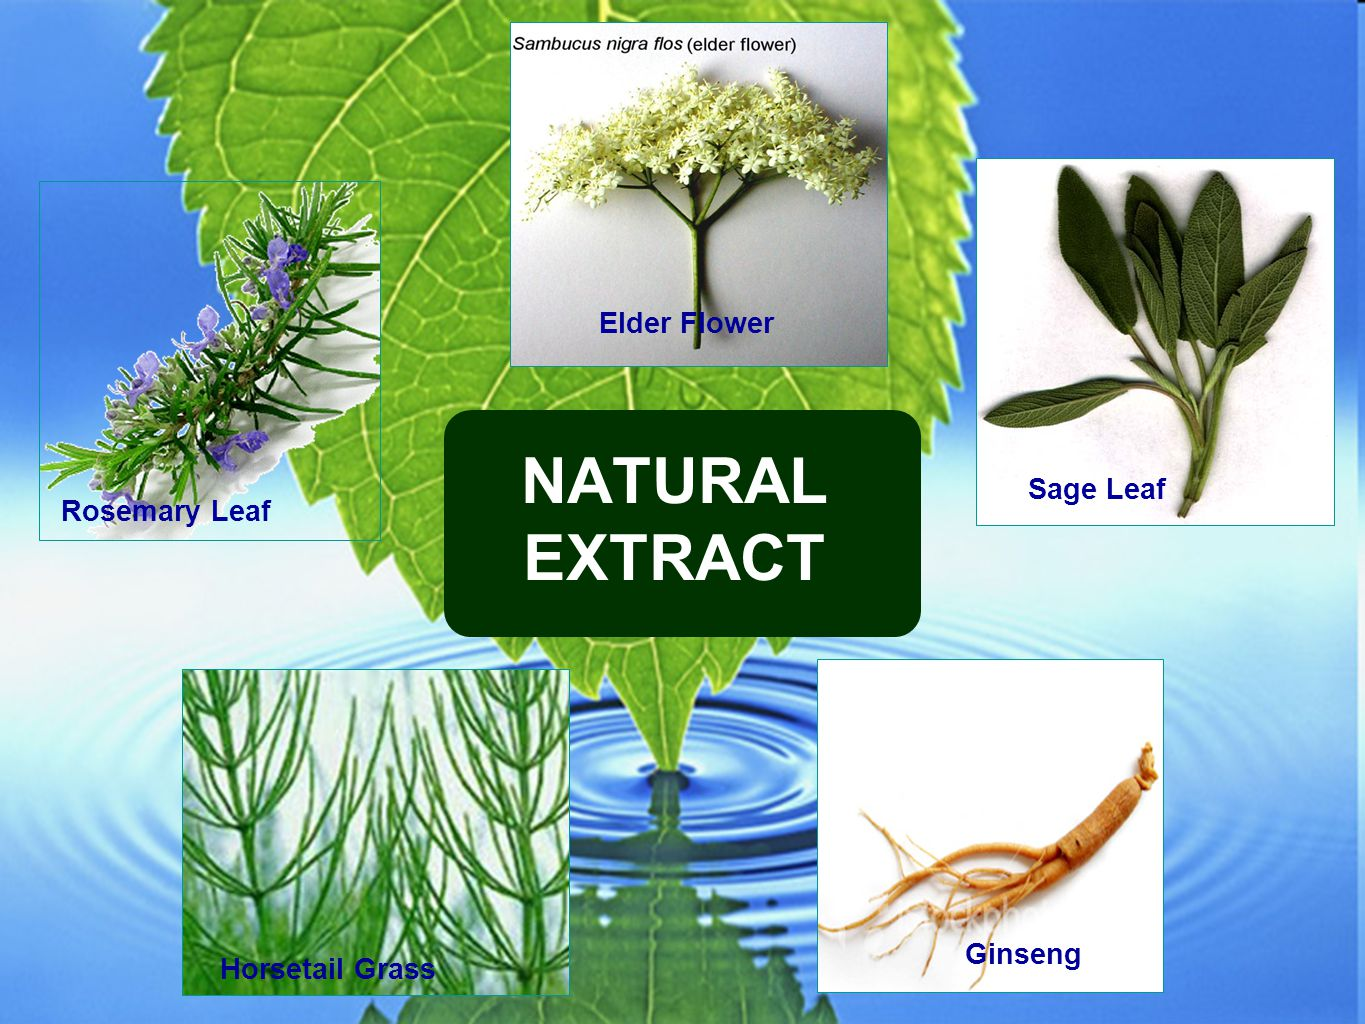 NATURAL EXTRACT Elder Flower Sage Leaf Rosemary Leaf Ginseng